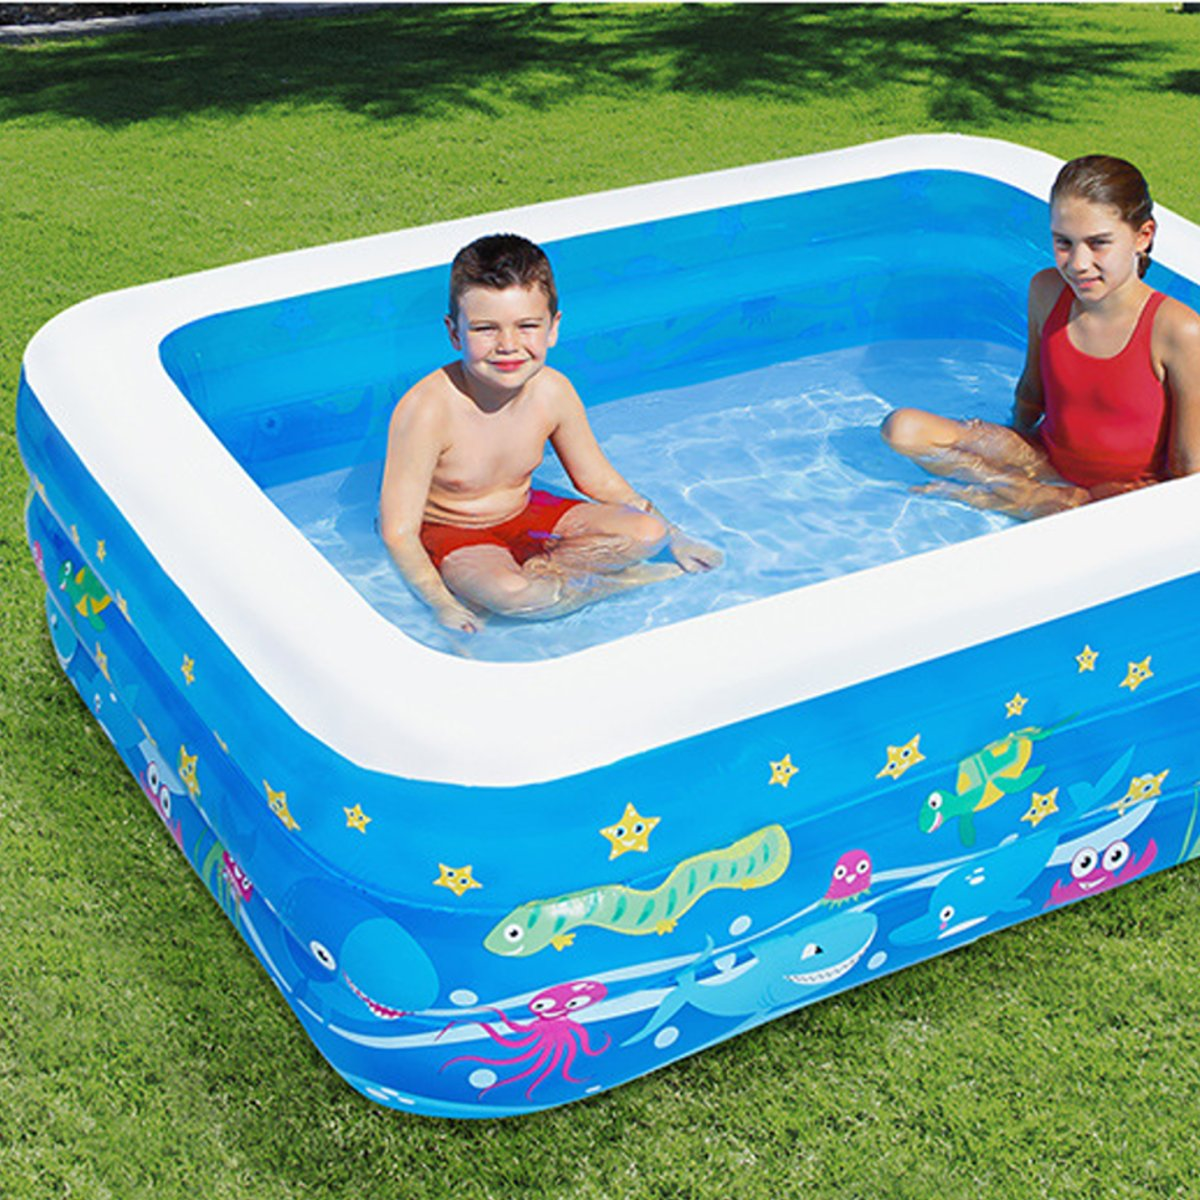 Inflatable Swimming Pool Family Childrens Kids Baby Large Water Rectangular Fun Swimming Pool-125/150/185cm